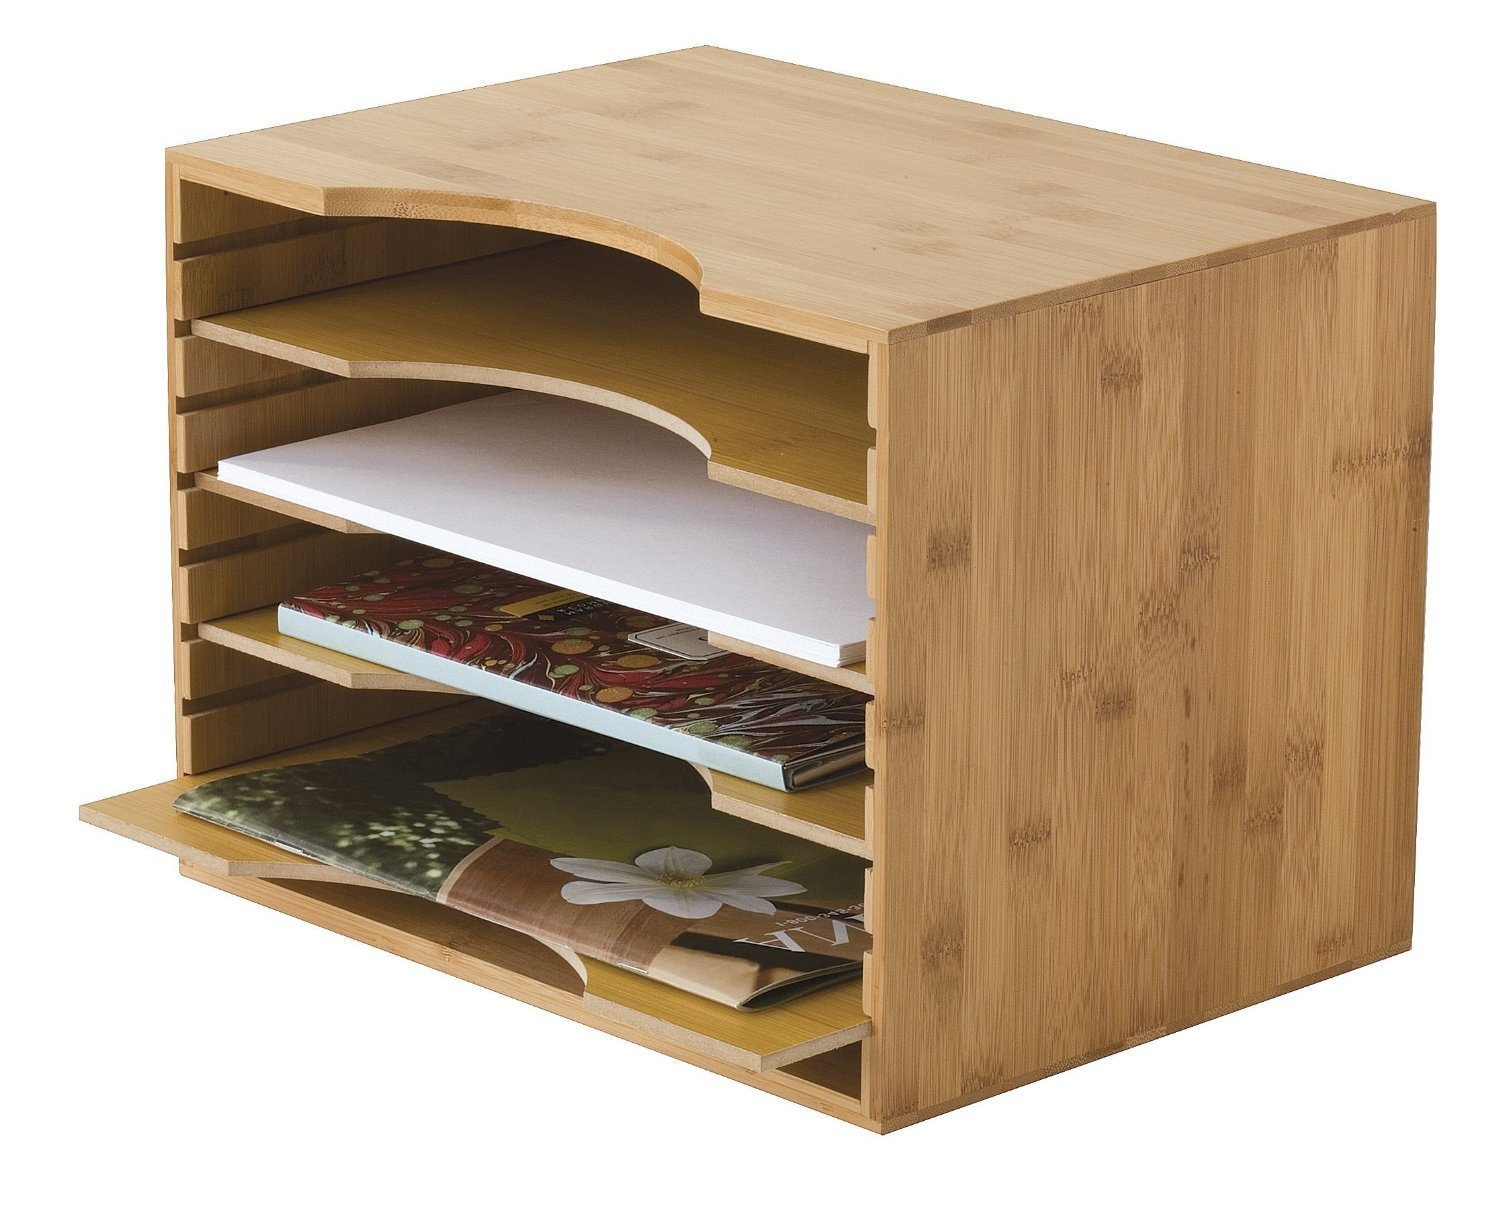 File Organizer Mail sorter, With Four Adjustable Dividers Natural Bamboo wood Color By Intriom Bamboo Collection (File Organizer) by Intriom (Image #2)